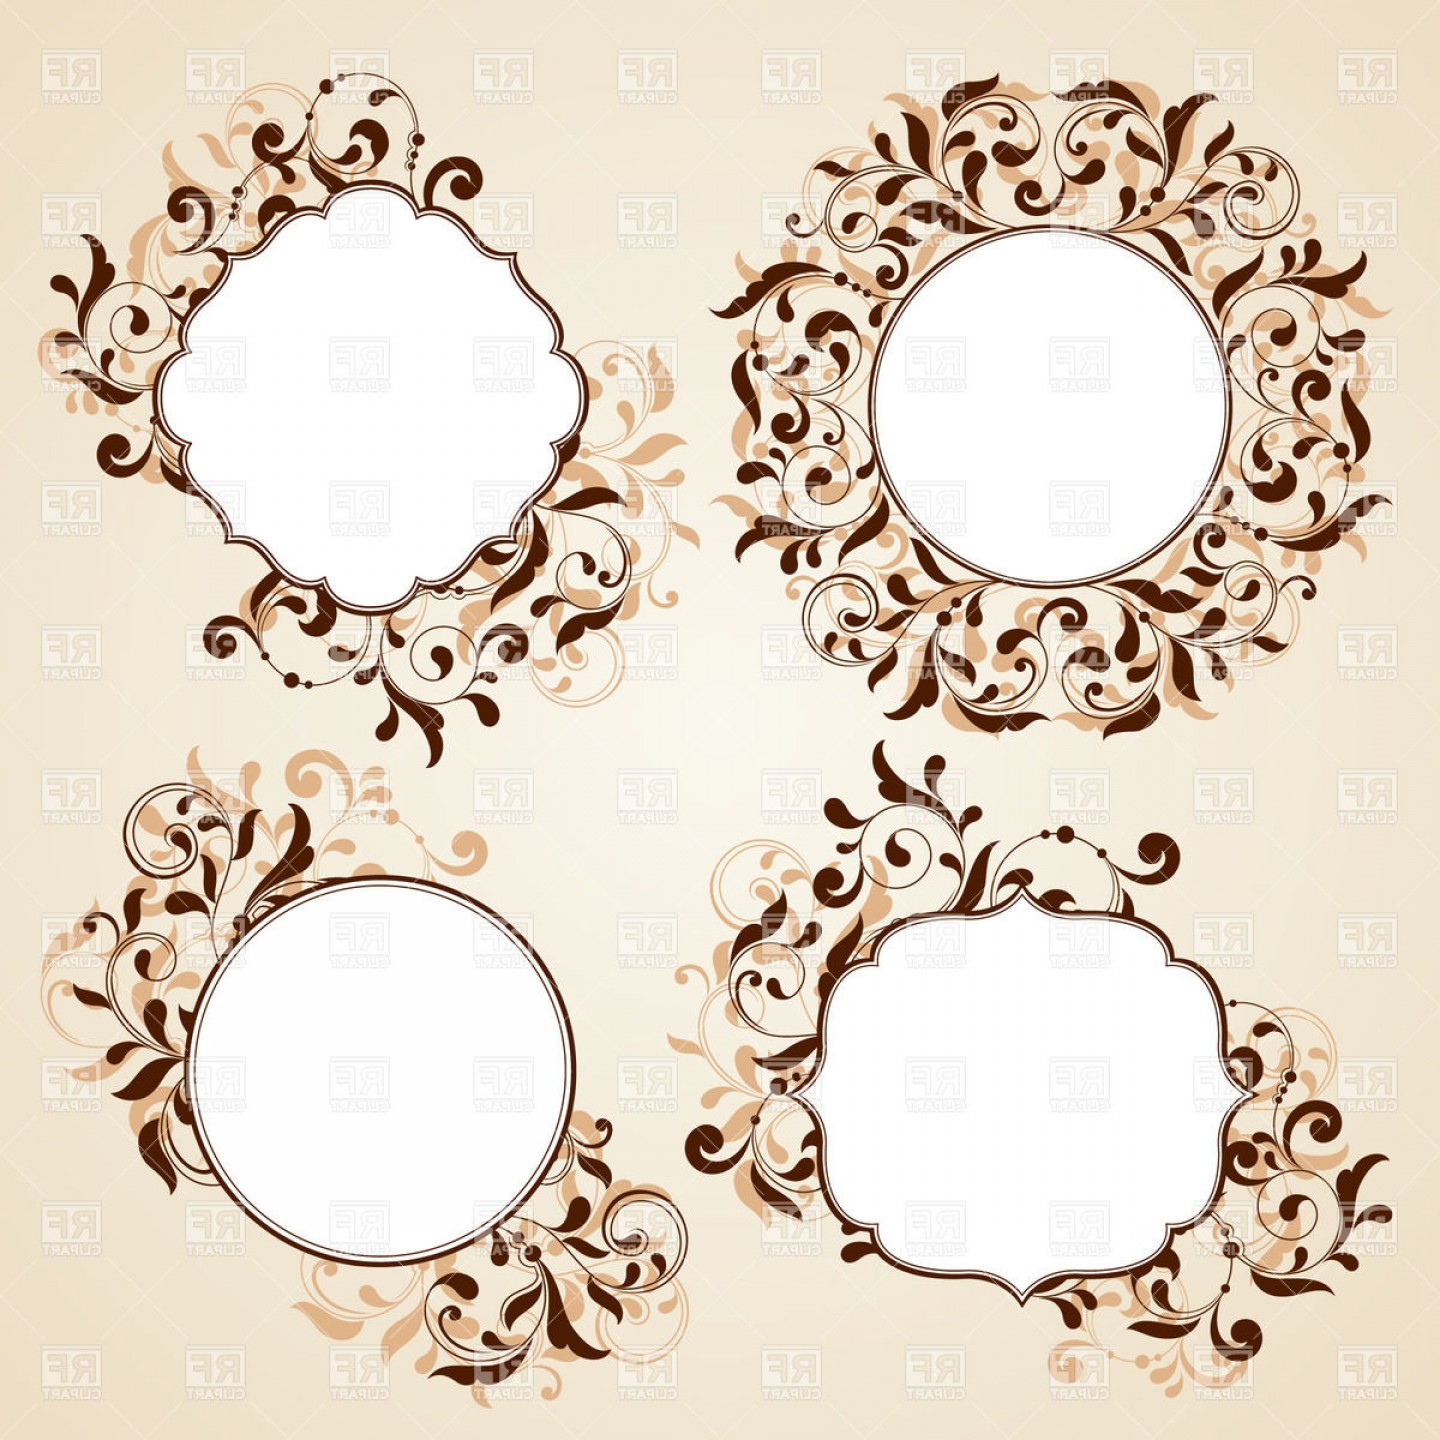 Vector Clip Art Collections: Collection Of Frames With Curly Floral Ornaments Vector Clipart